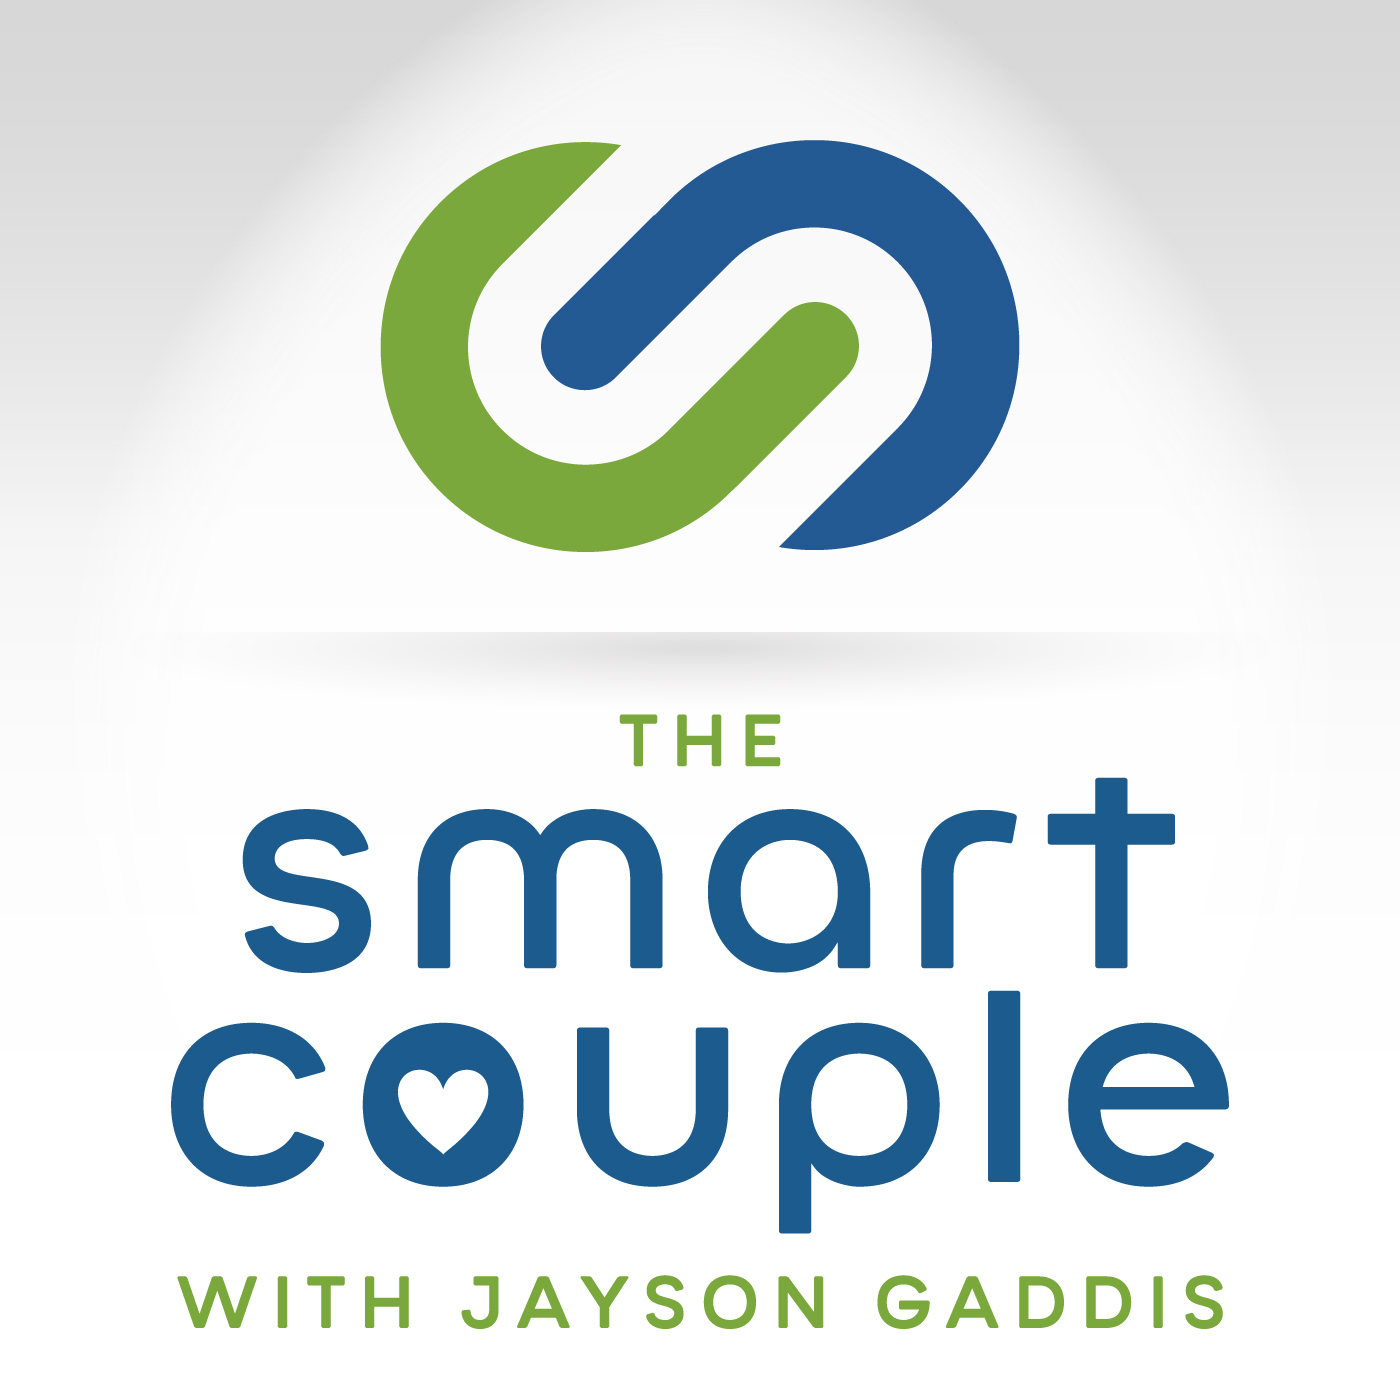 The Relationship School Podcast - Getting The Love You Want - Harville Hendrix & Helen LaKelly Hunt - Smart Couple Podcast #227